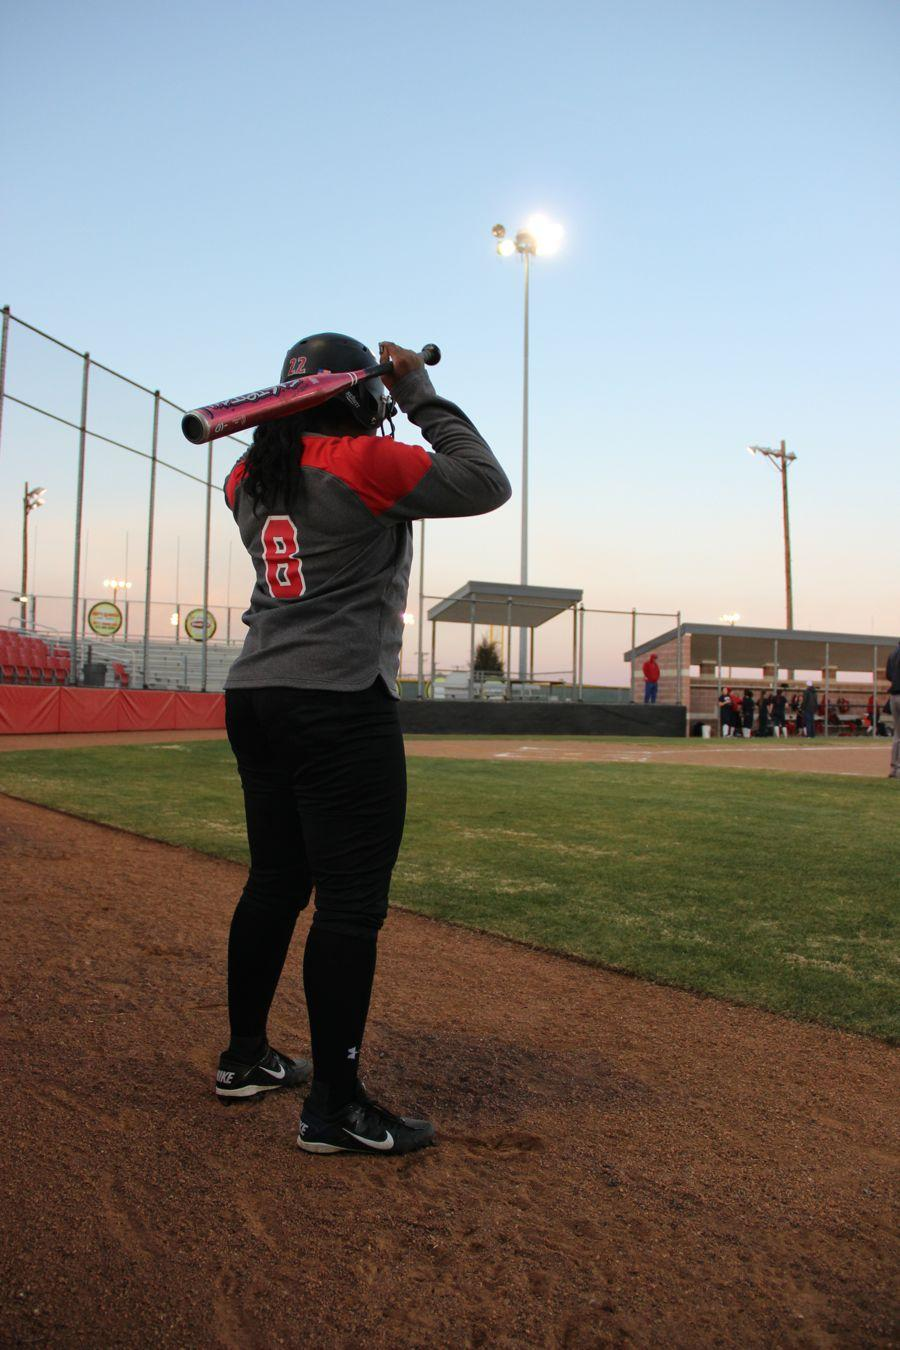 Coppell+High+School+junior+Adaqu+Ngwu+waits+to+bat+at+the+Coppell+ISD+baseball%2Fsoftball+complex.+Coppell+JV+II+scrimmaged+against+Allen+on+Monday.%0A